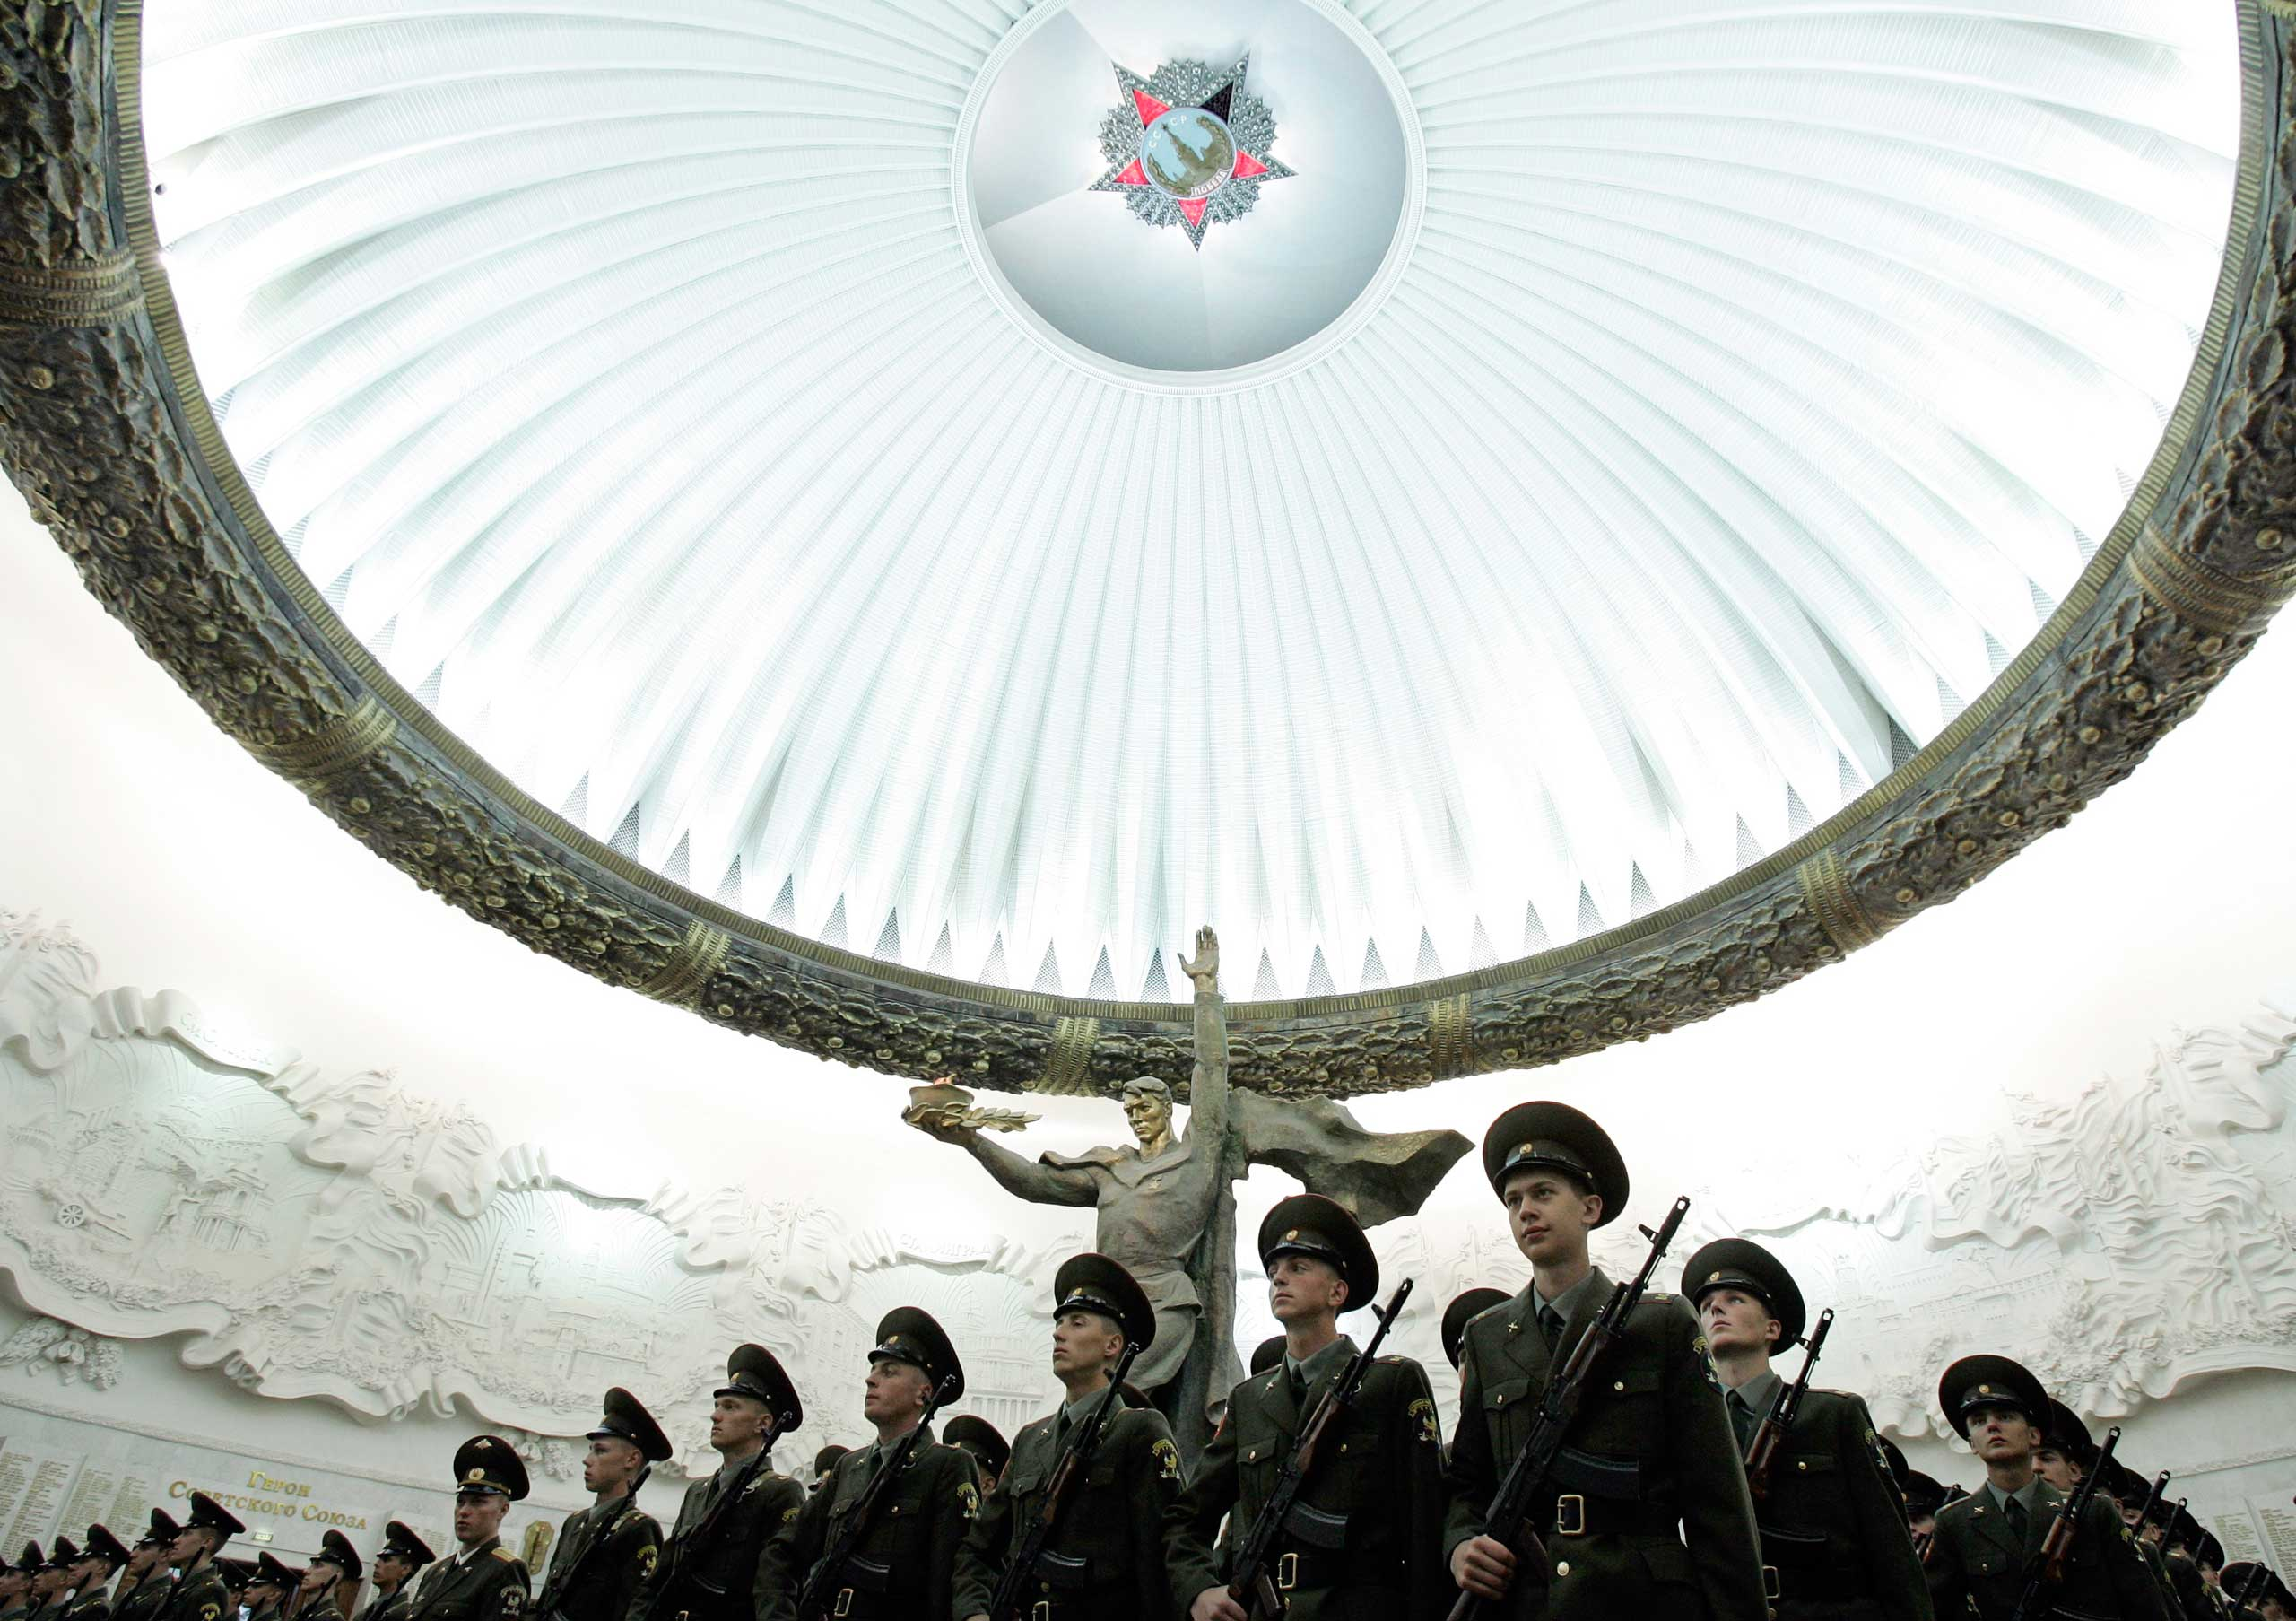 Soldiers stand in formation as they swear an oath at the World War Two museum on Poklonnaya Gora in Victory Park, Moscow in 2007.